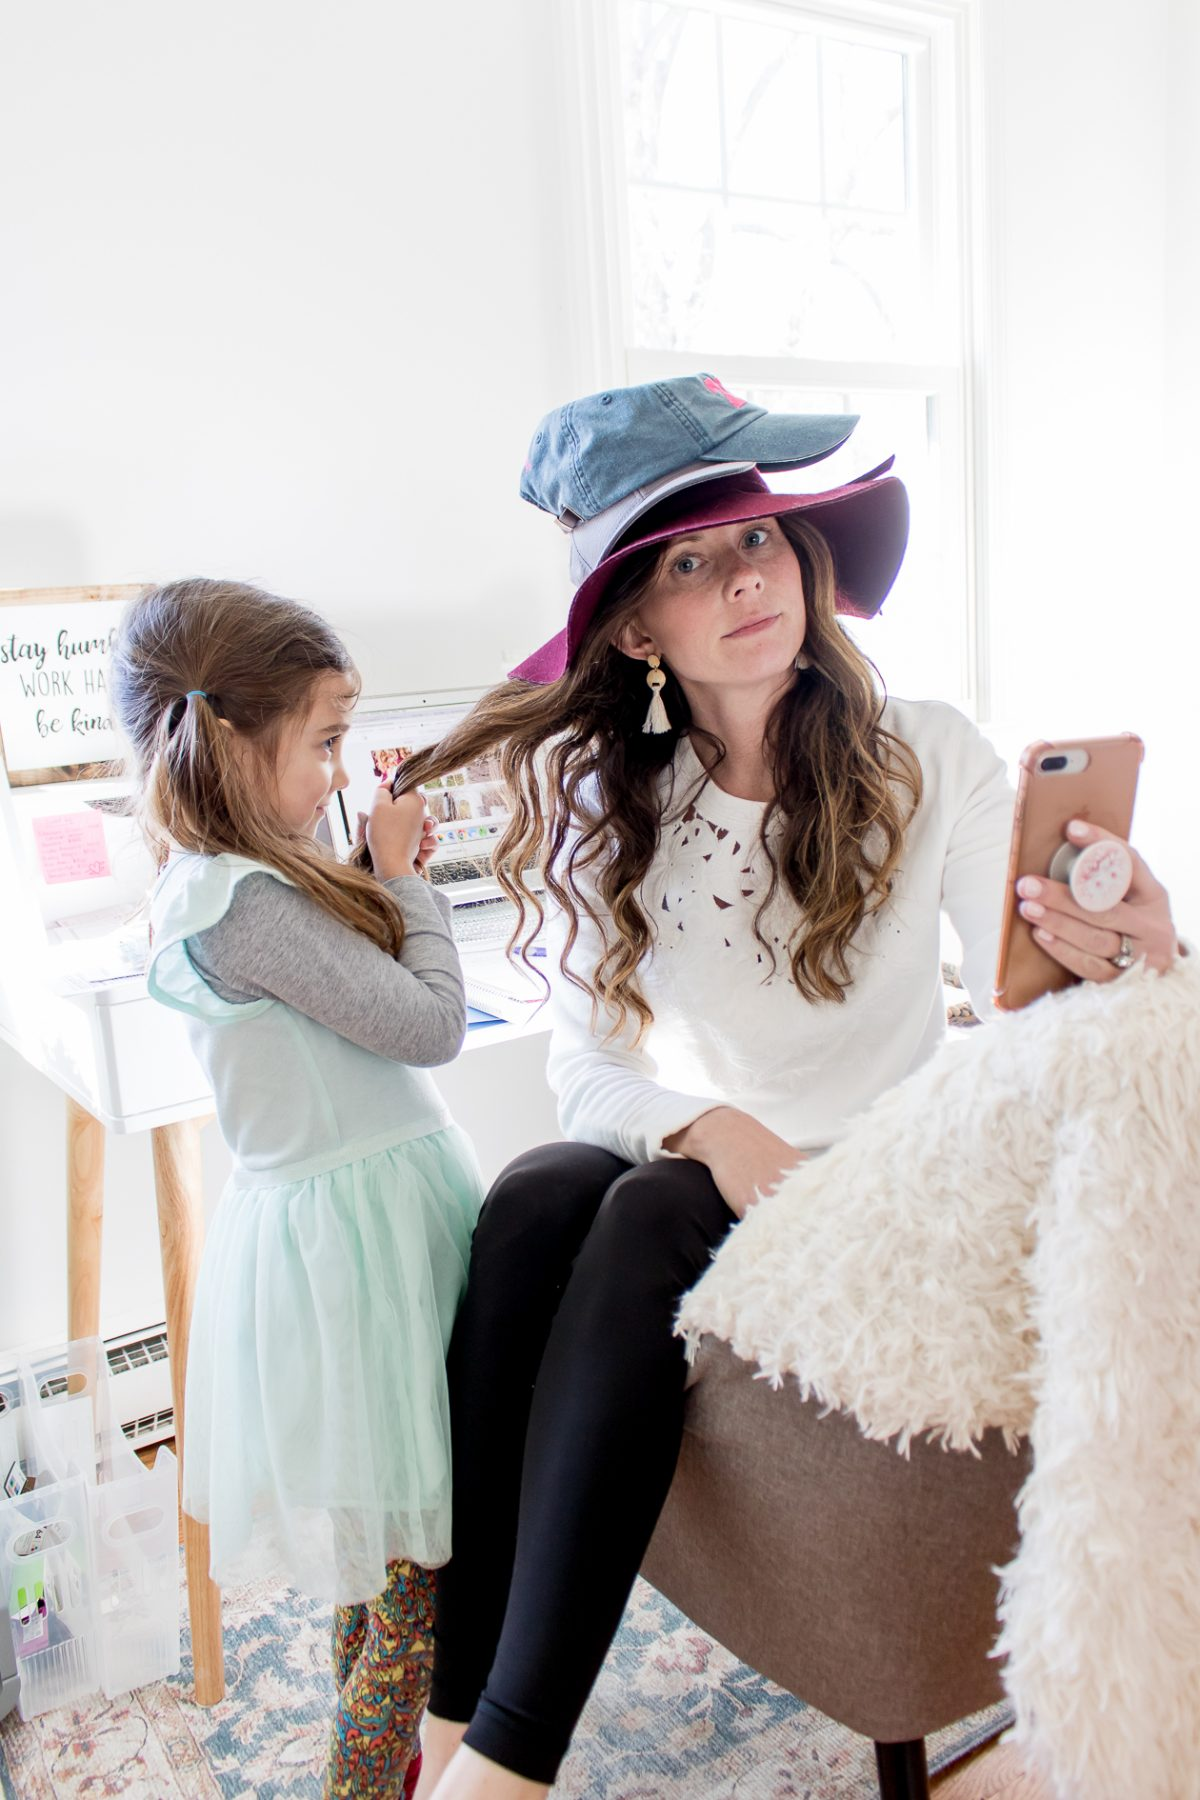 mom wearing three hats looking at the camera and holding a phone while her daughter pulls her hair